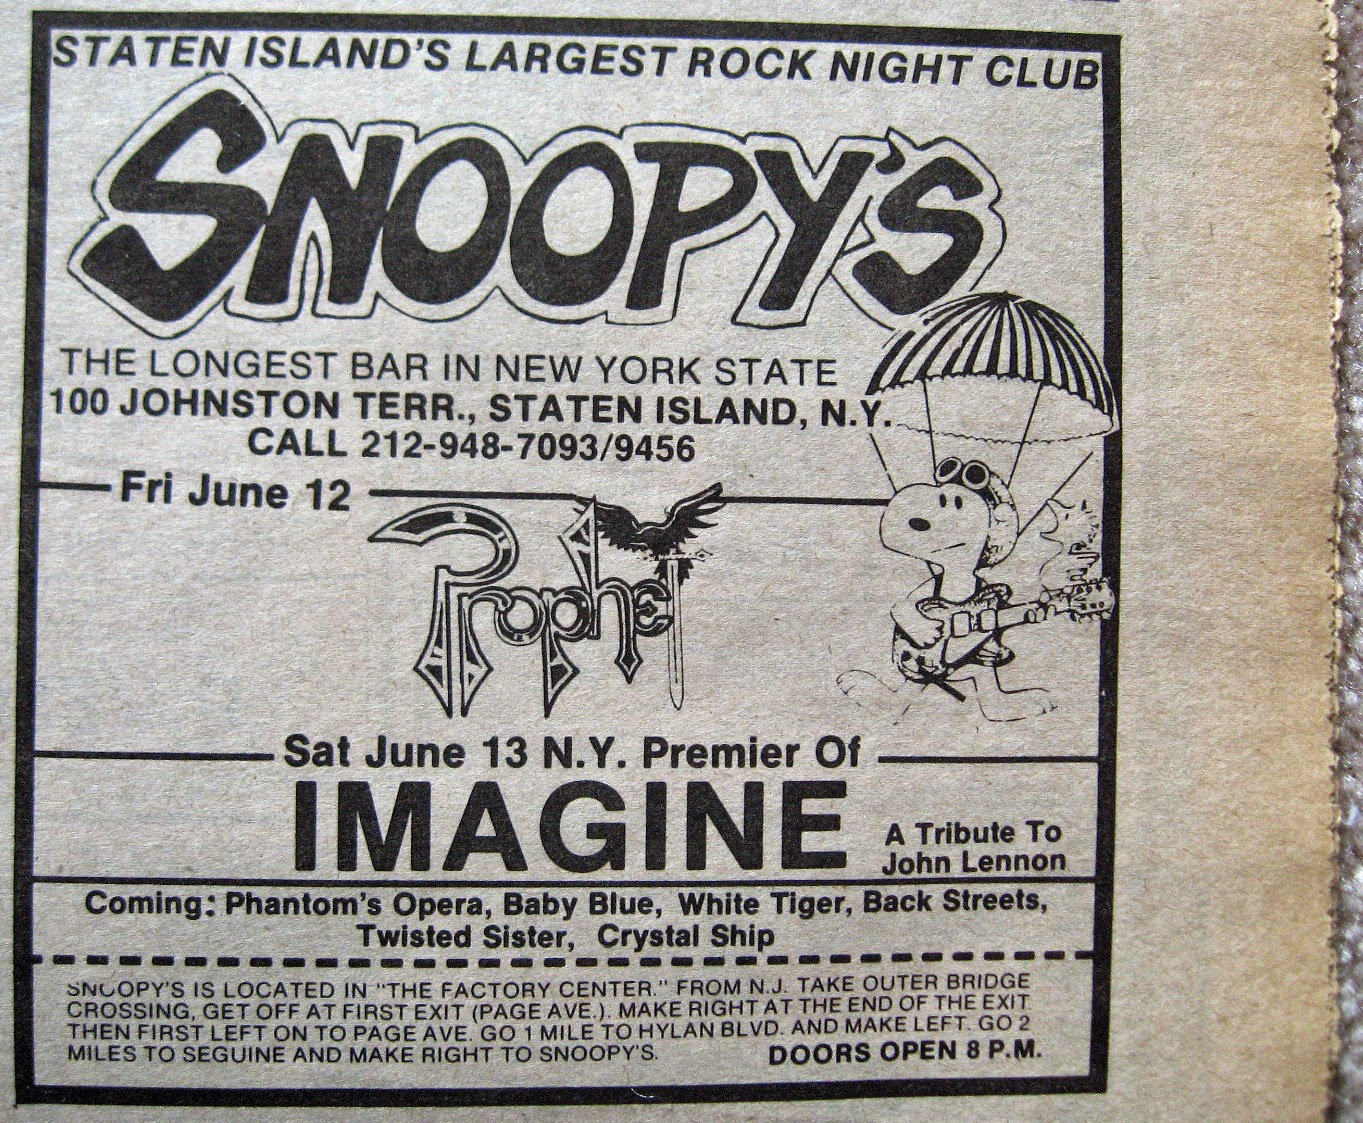 Snoopy's band line up 1981